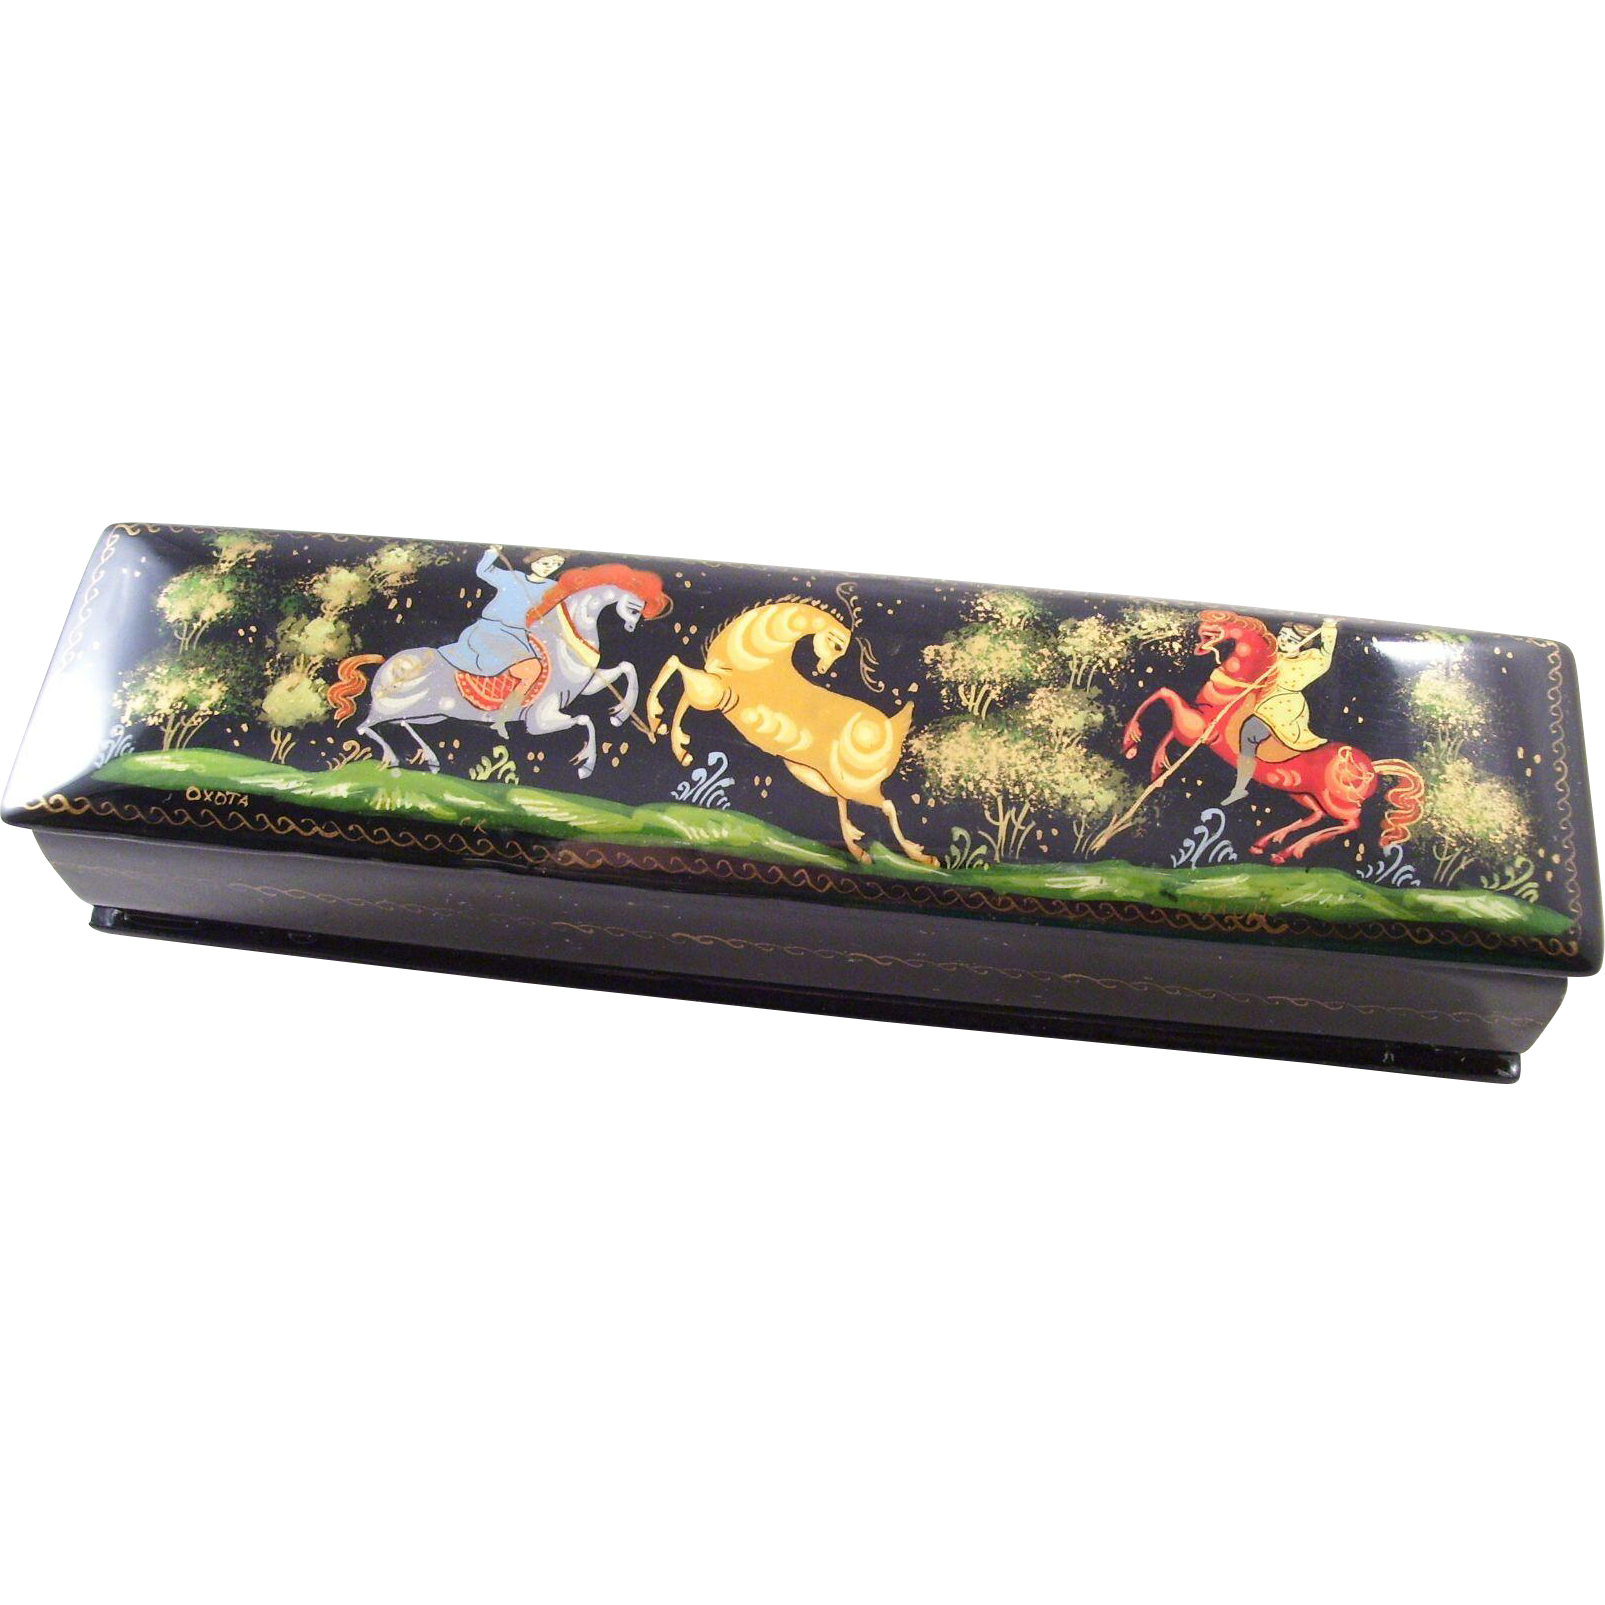 Russian Black Lacquer Fairy Tale Box - Golden Stag pencil box